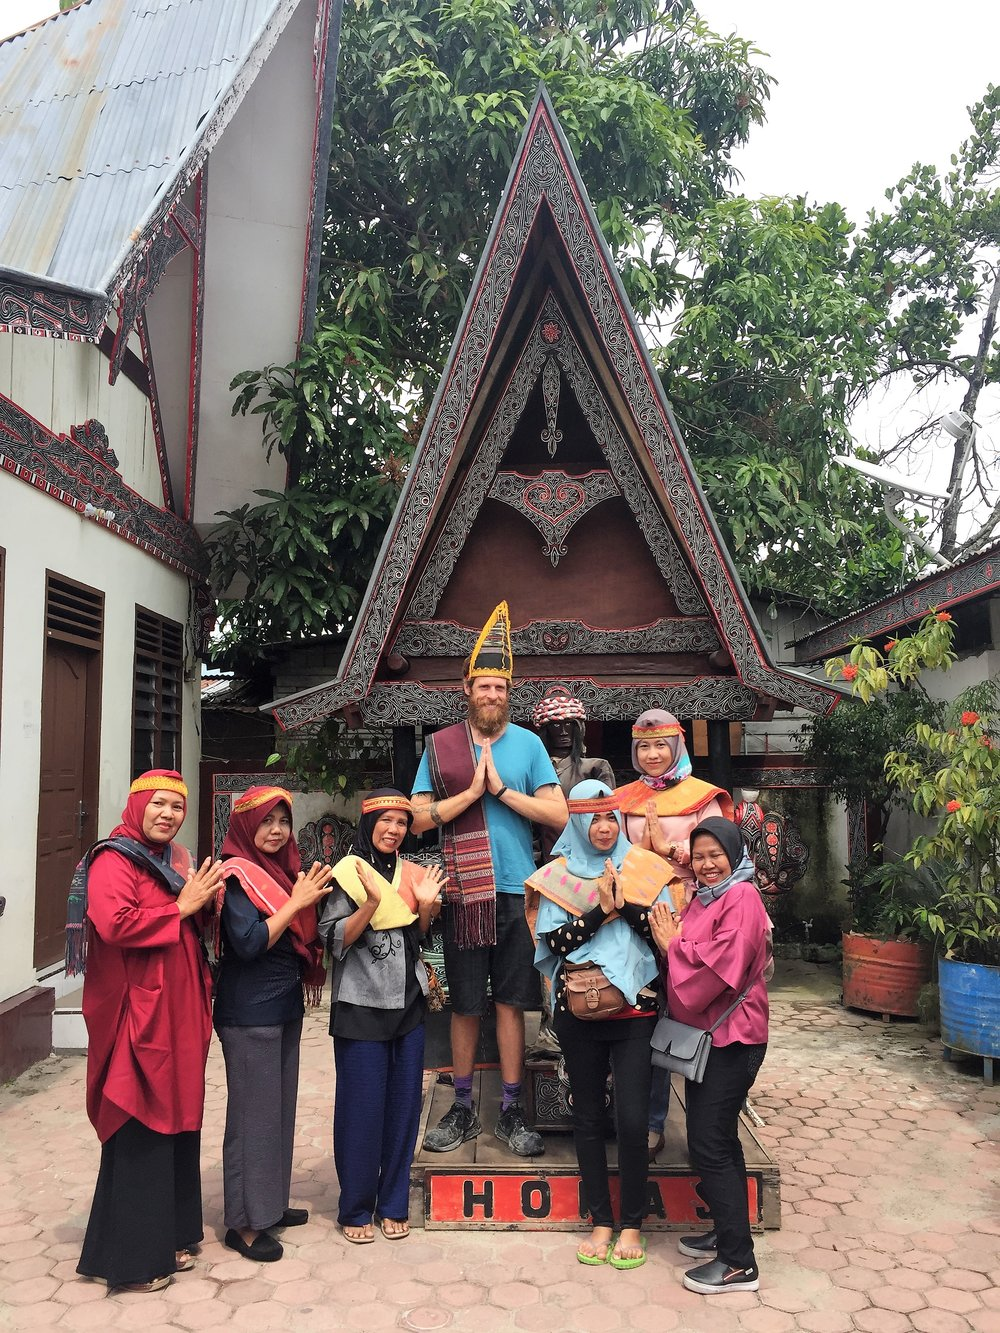 celebrating  the Batak people  in traditional clothing, Lake Toba